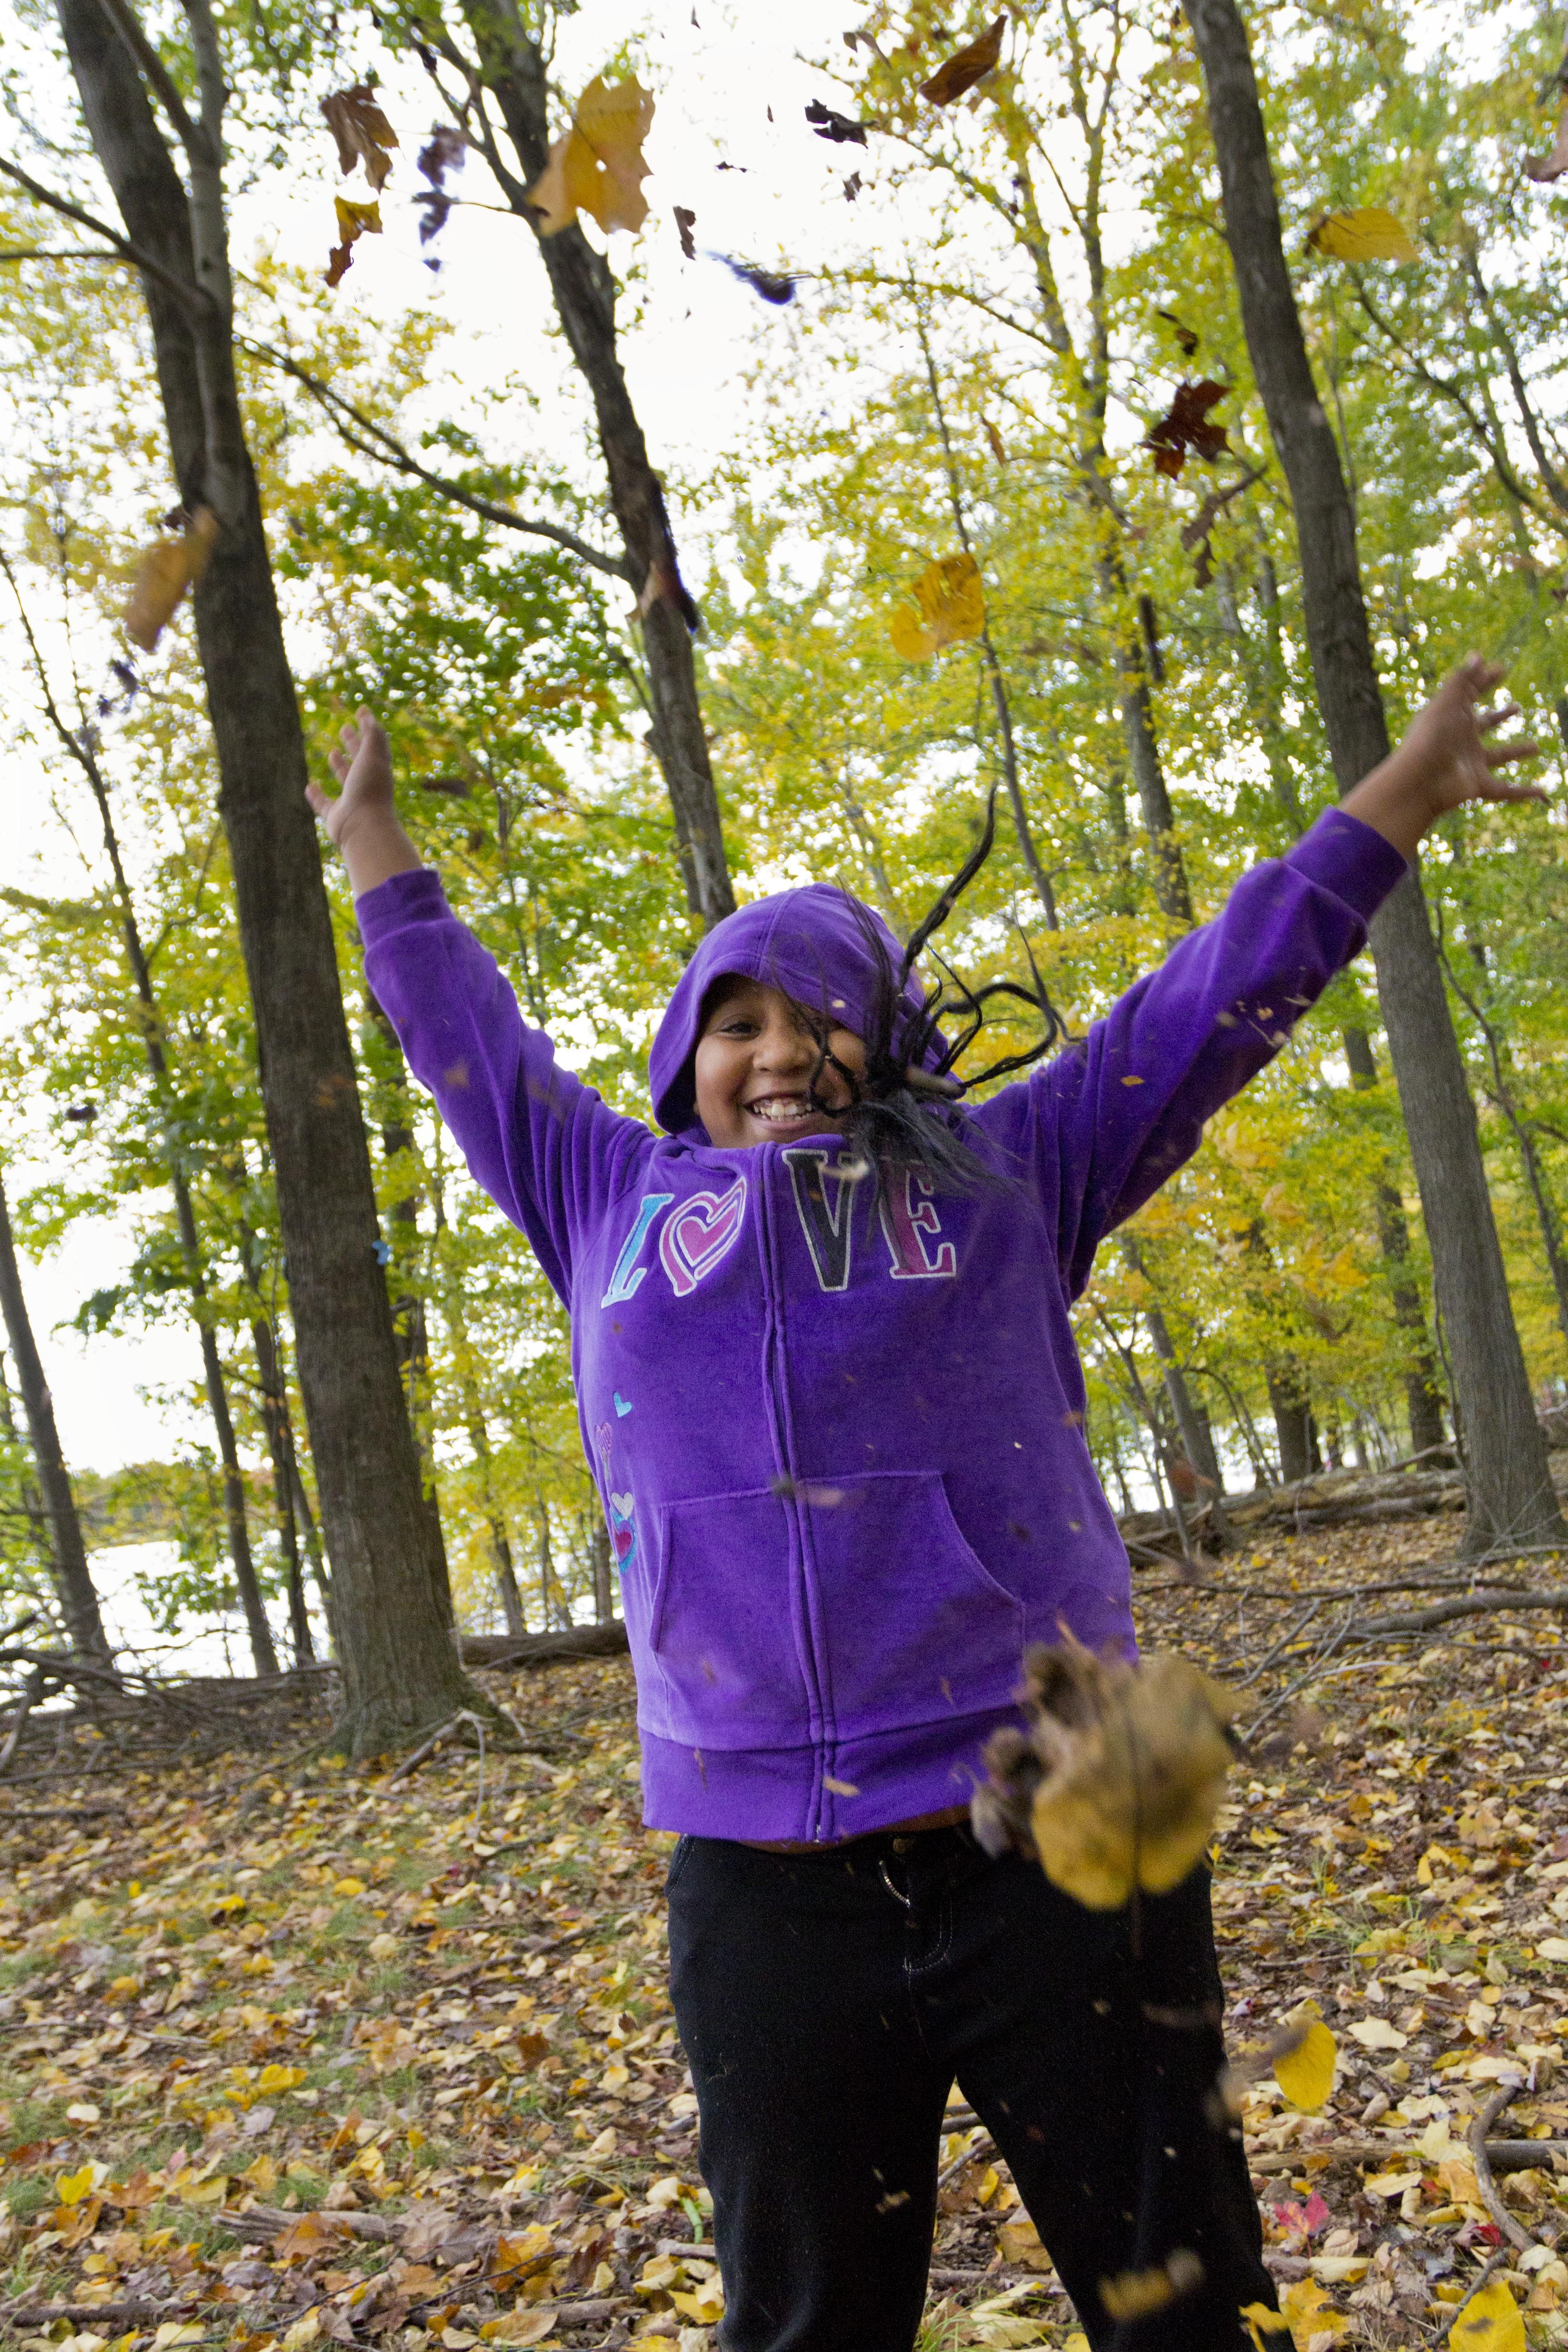 Crisp air and leaves on the ground won't stop ABC campers